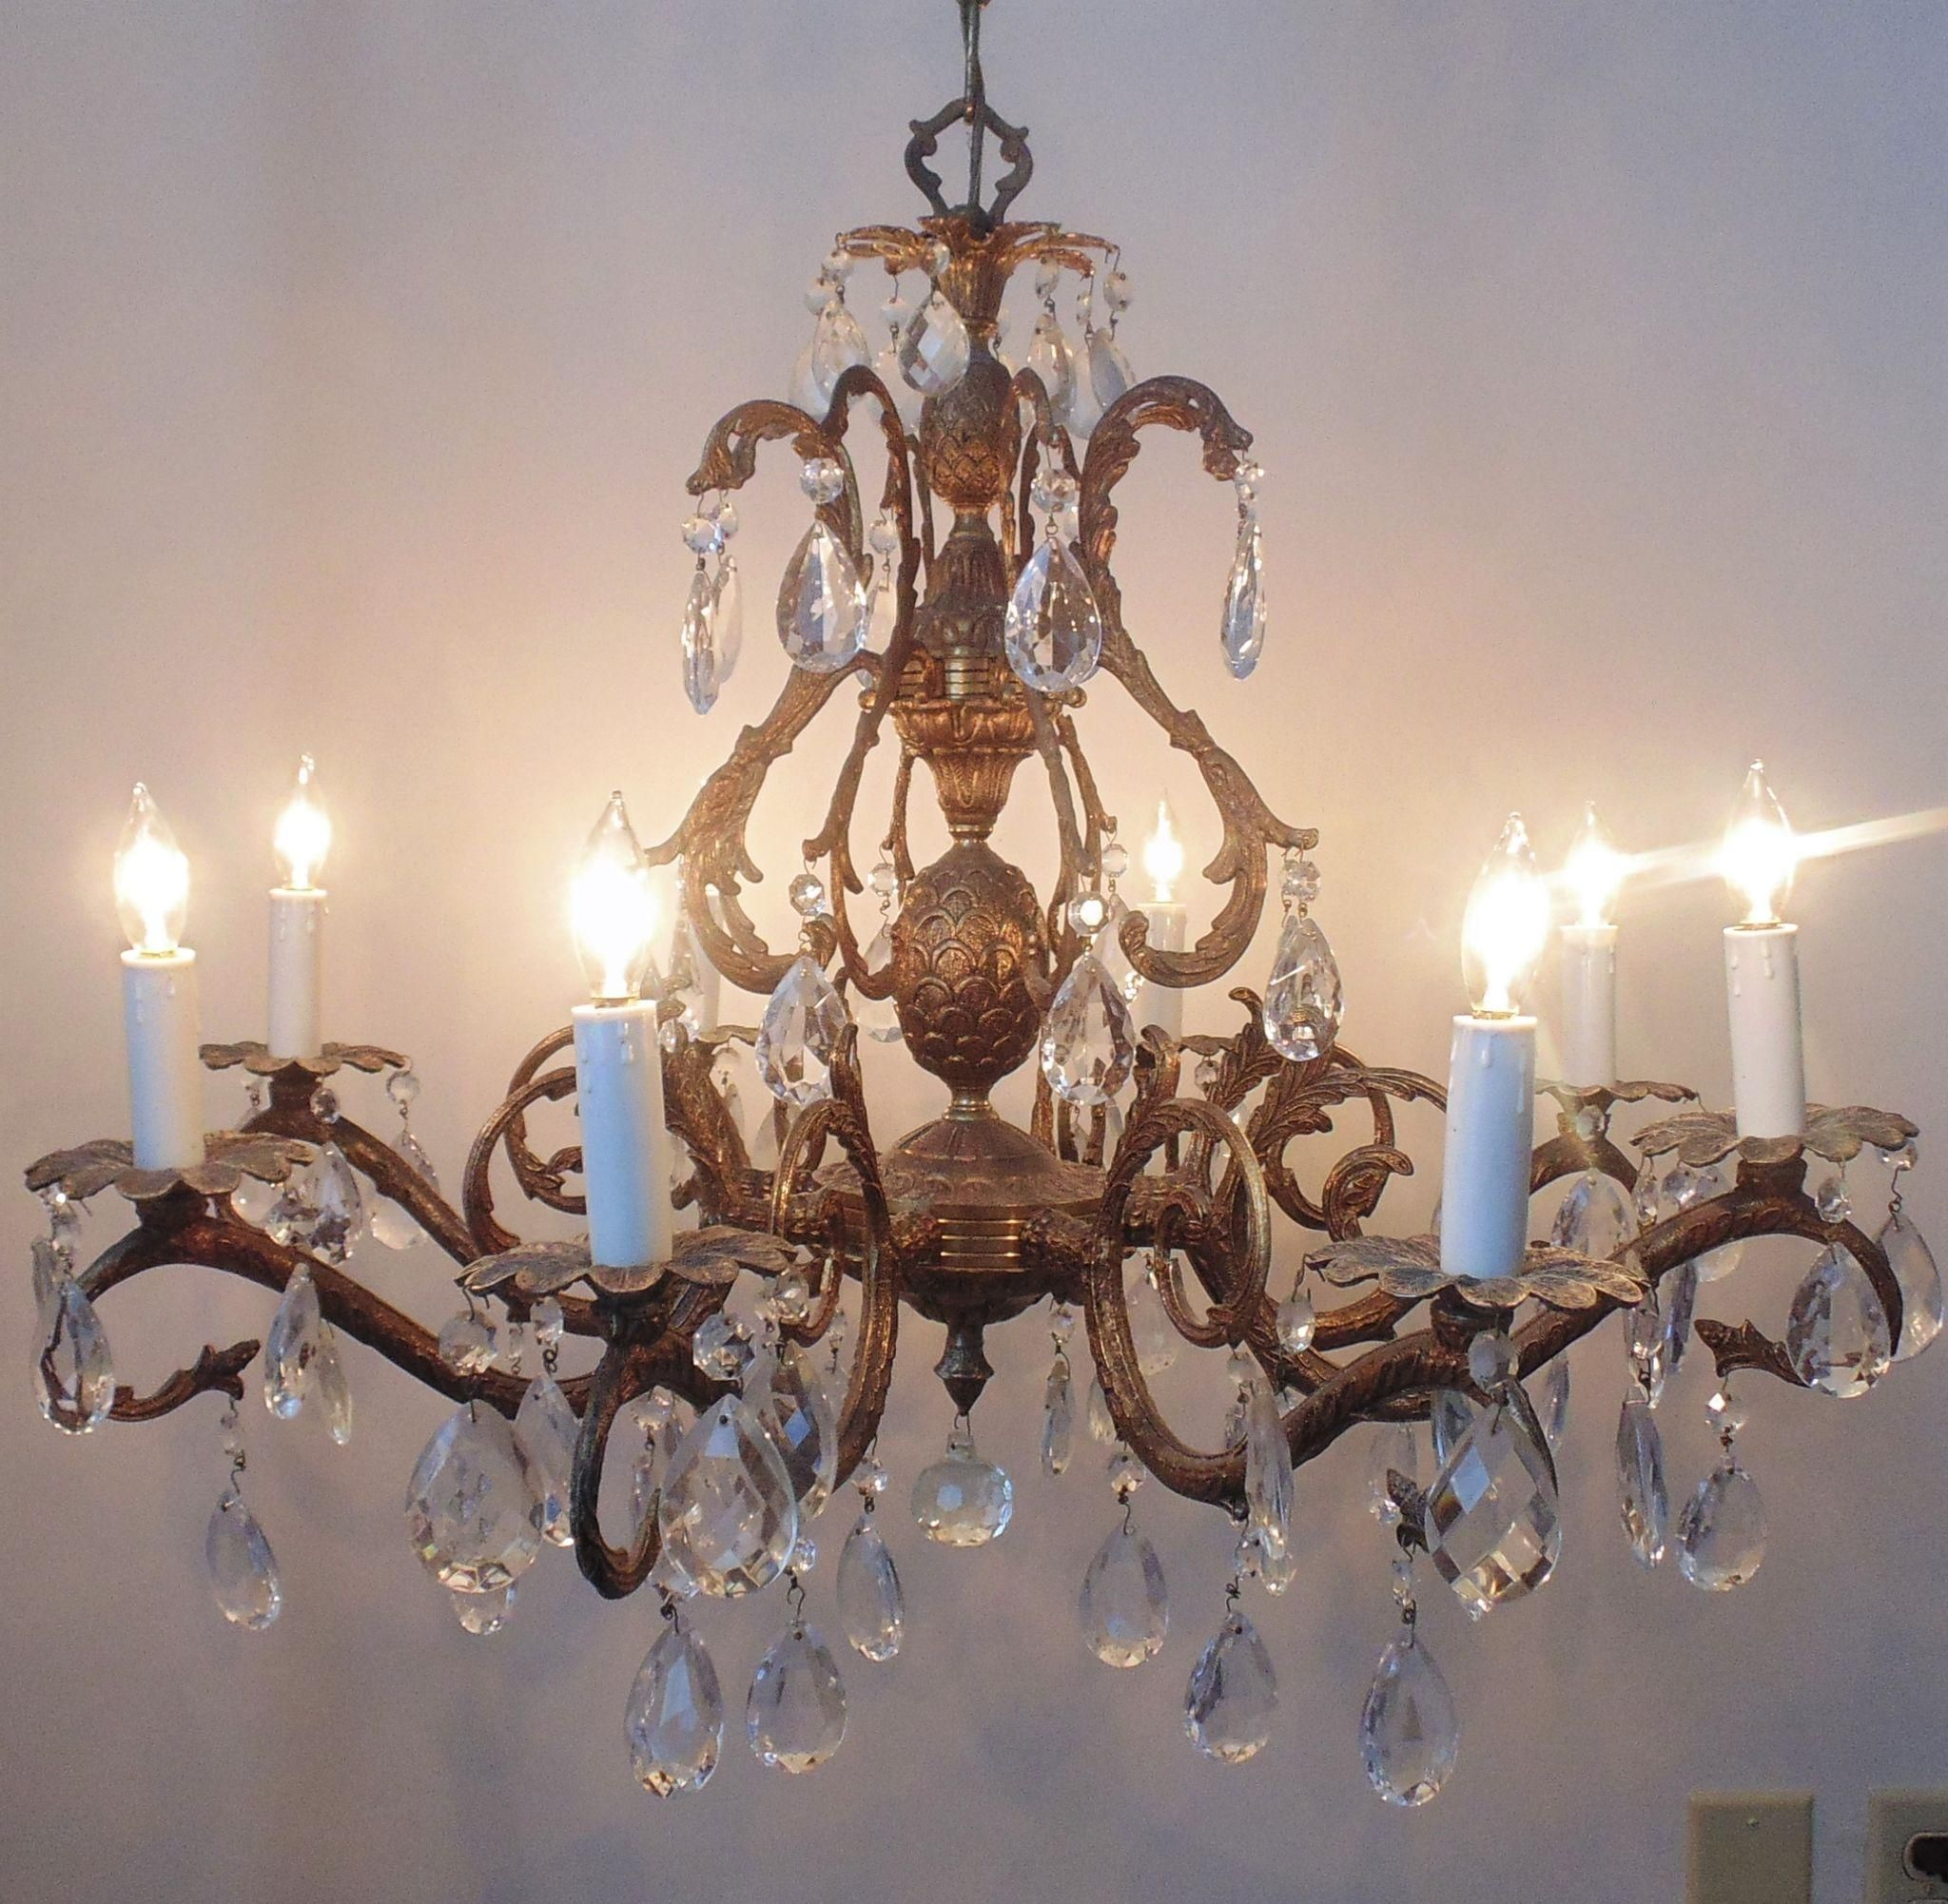 chandeliers crystals bronze chrome antique overstockcom design with light attracktive fixtures contemporary fascinating mini ideas chandelier indoor by